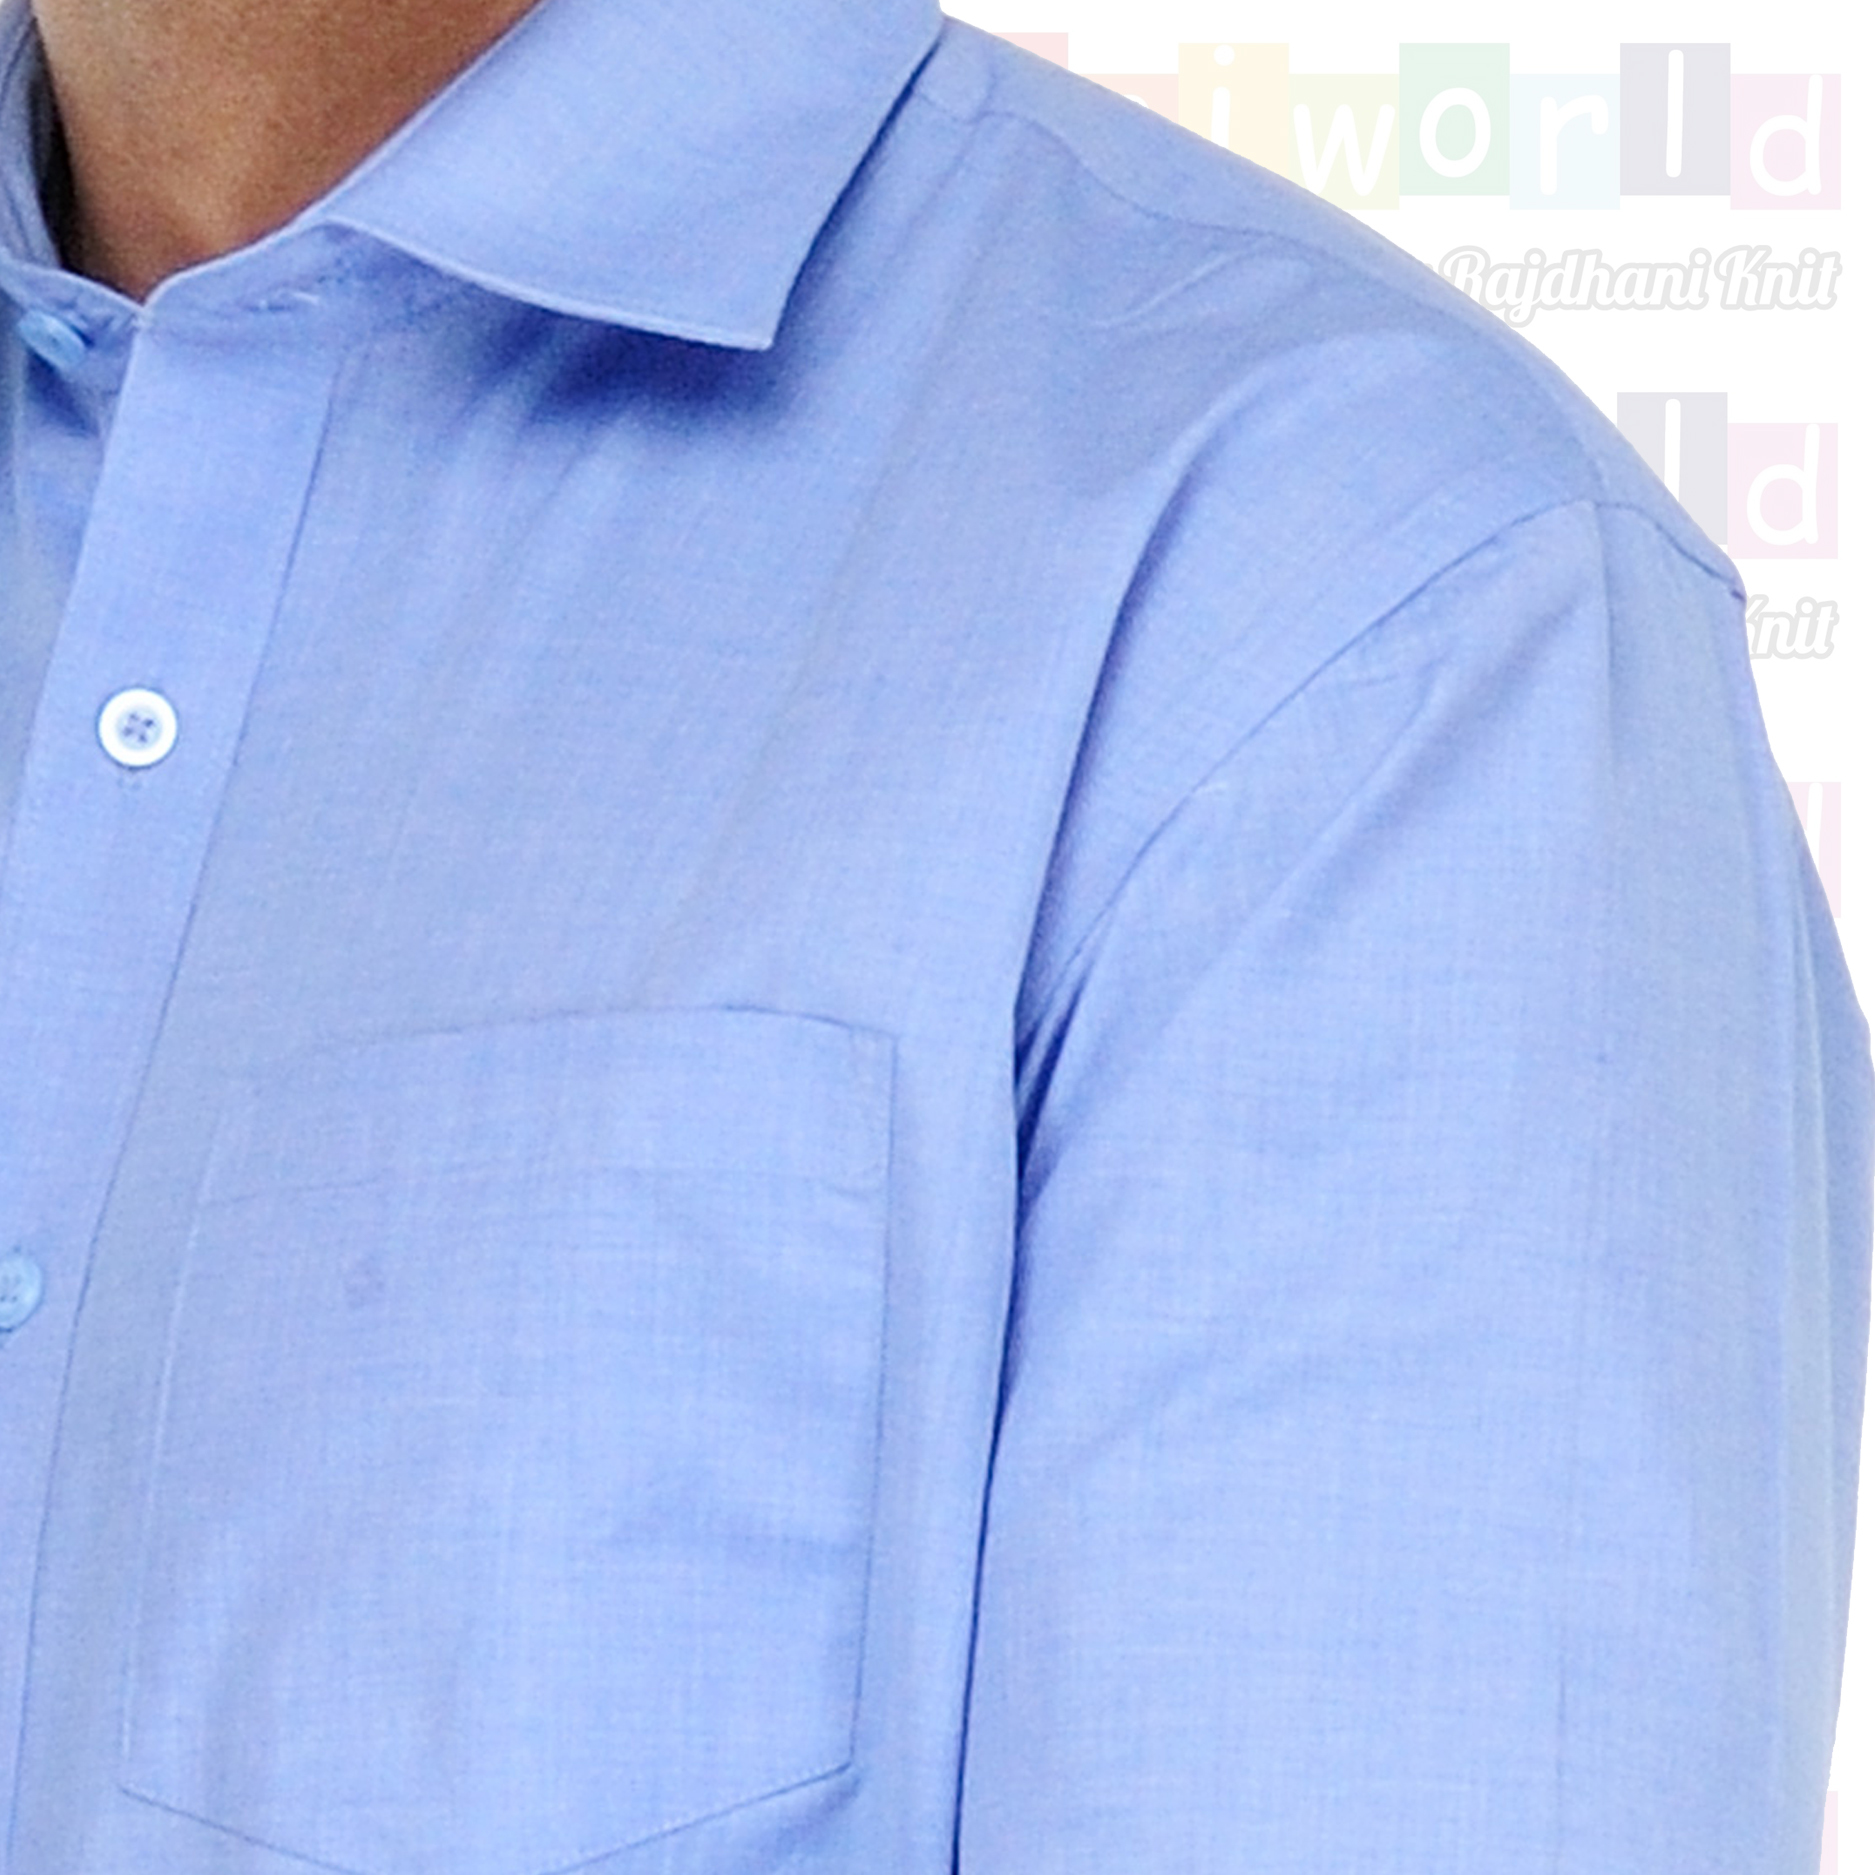 Office Uniform Shirt